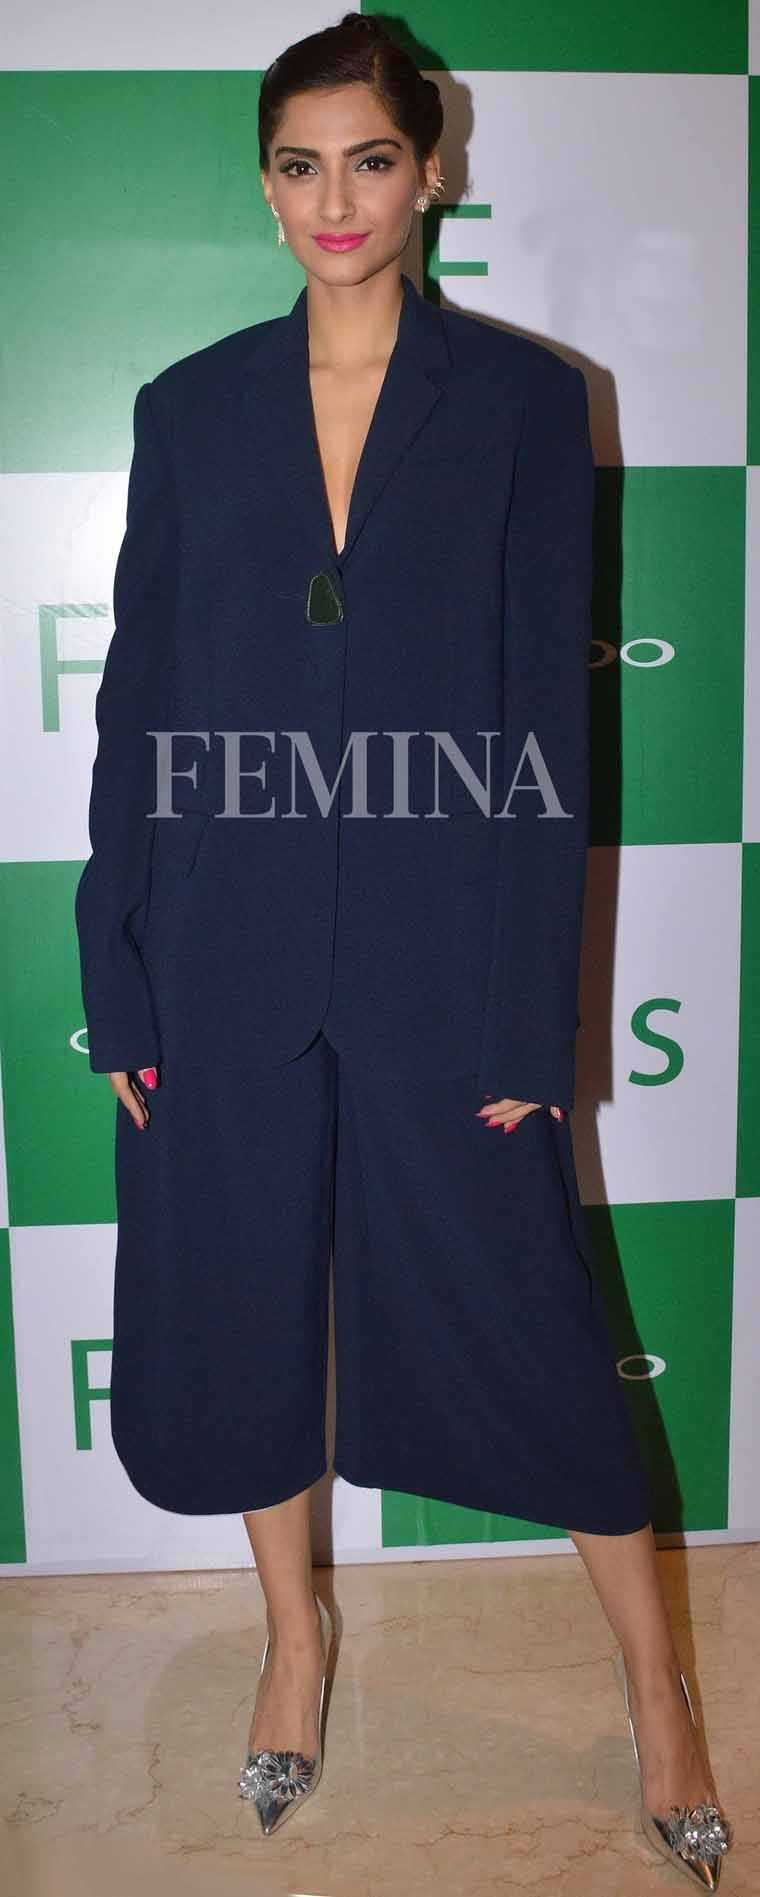 Sonam Kapoor The always experimental Sonam opted for suit-style Roksanda separates with Sophia Webster pumps. Extra points for her cool braided up-do.